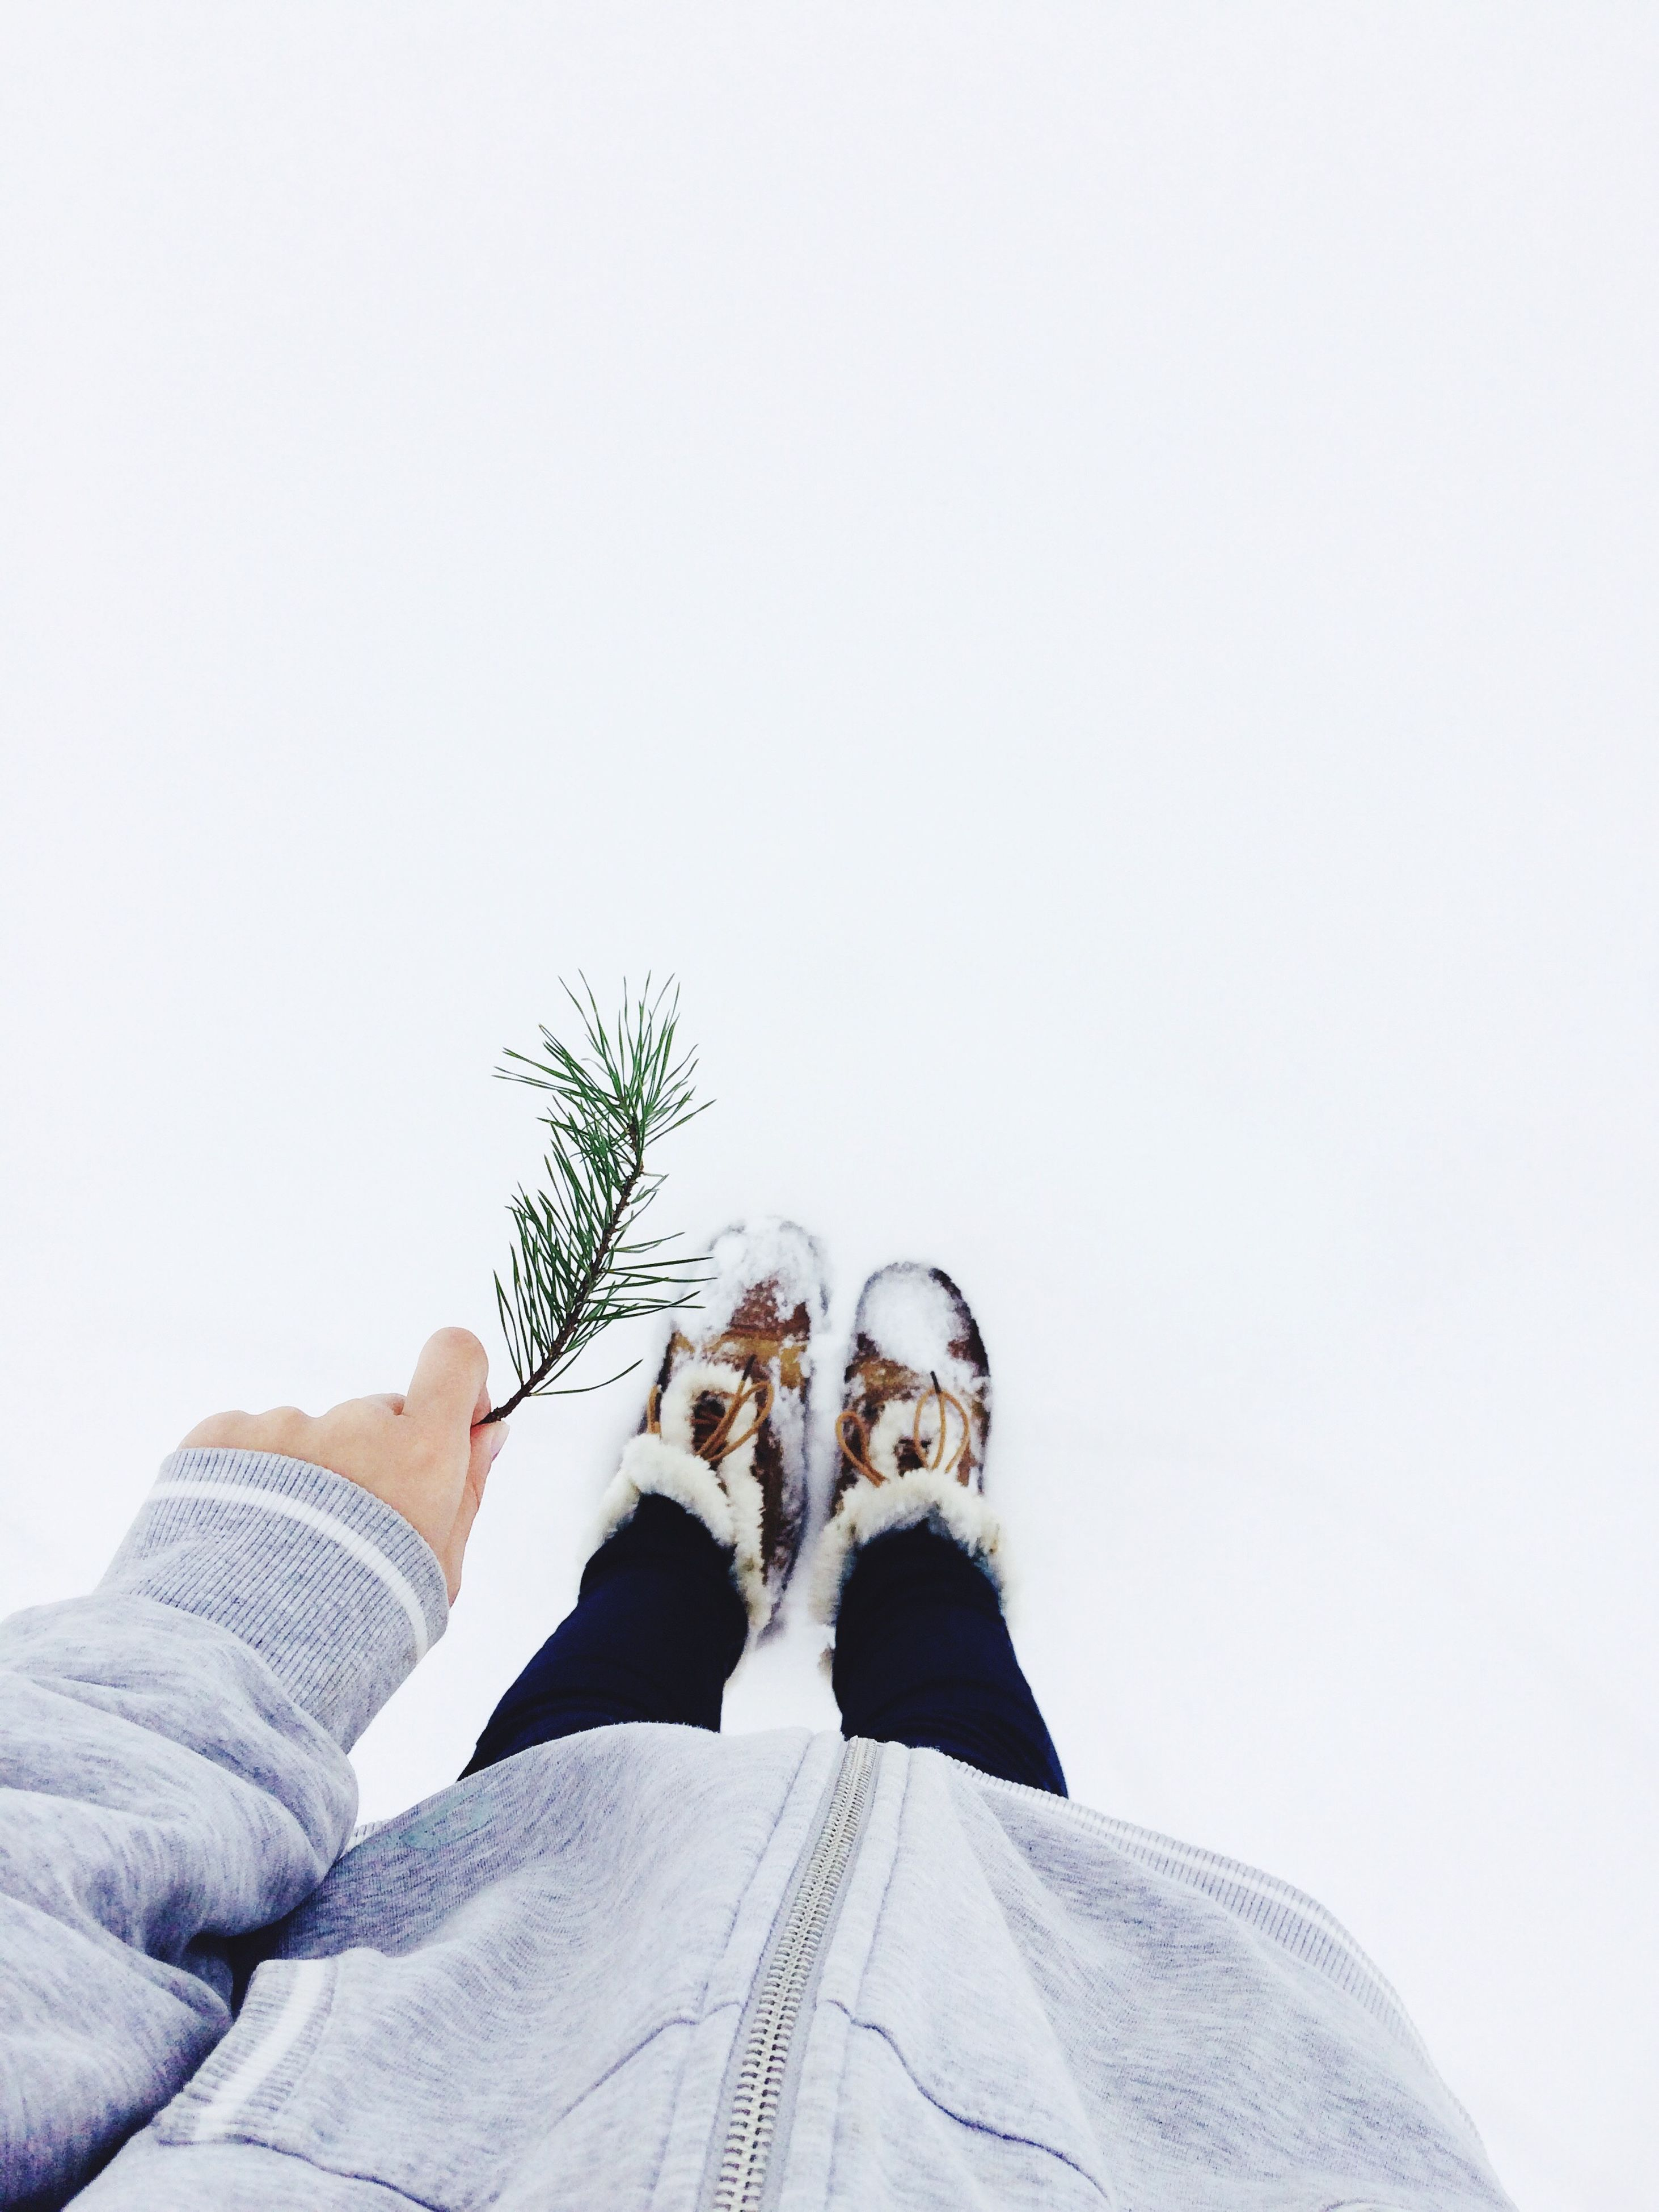 copy space, real people, personal perspective, low section, lifestyles, human body part, human leg, leisure activity, clear sky, shoe, one person, men, outdoors, day, nature, close-up, white background, human hand